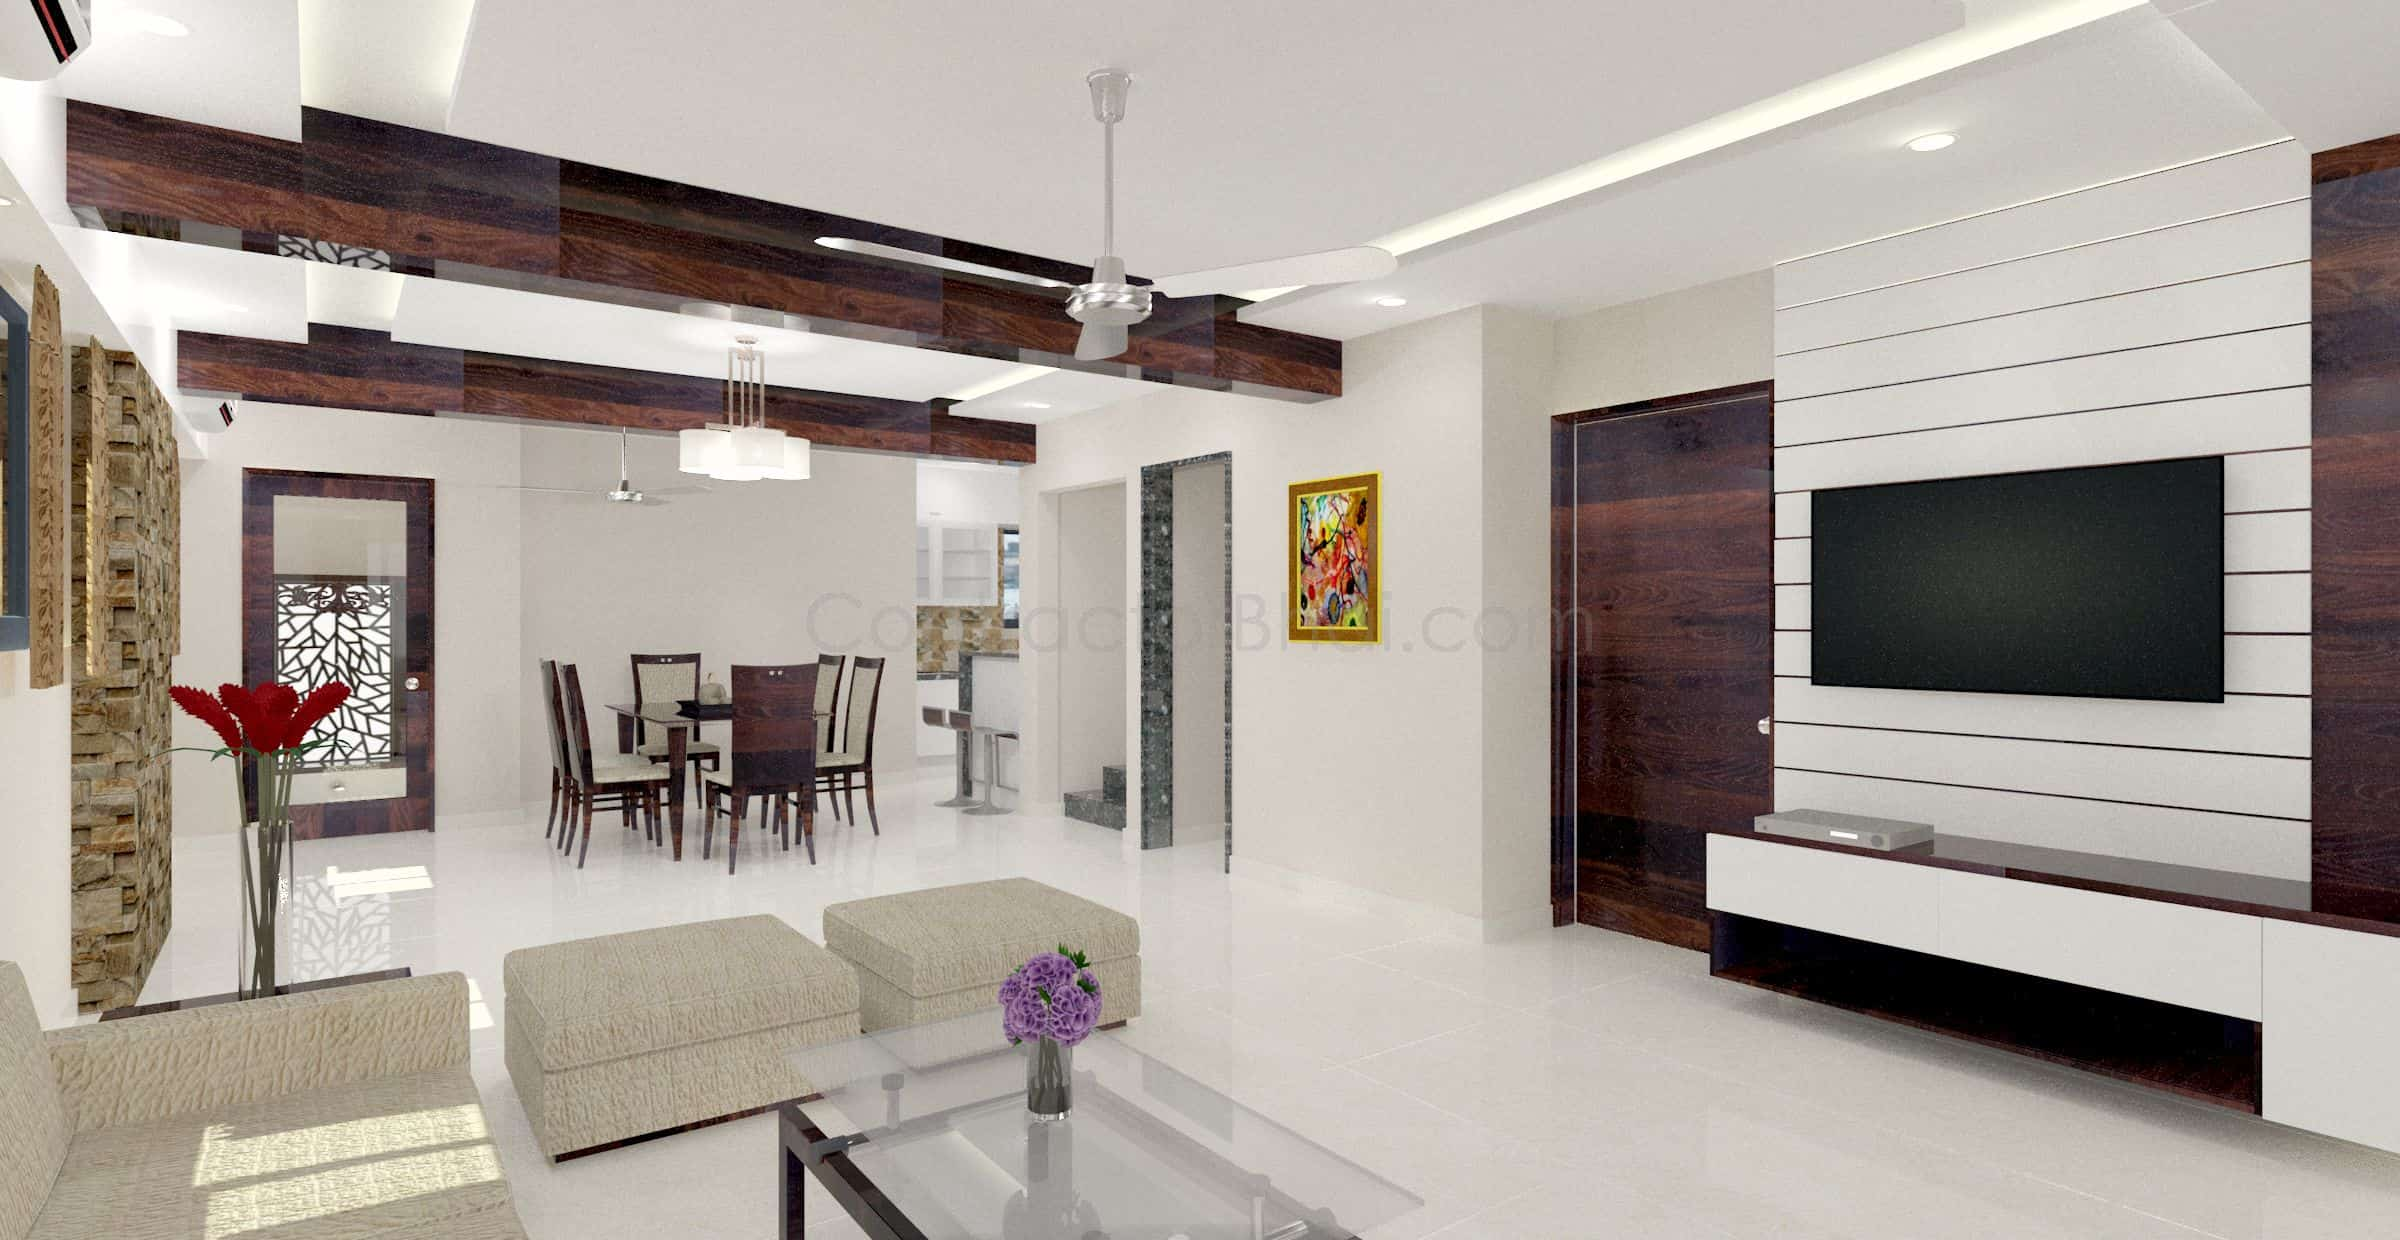 3d interior design service for indian homes contractorbhai for Image of interior design